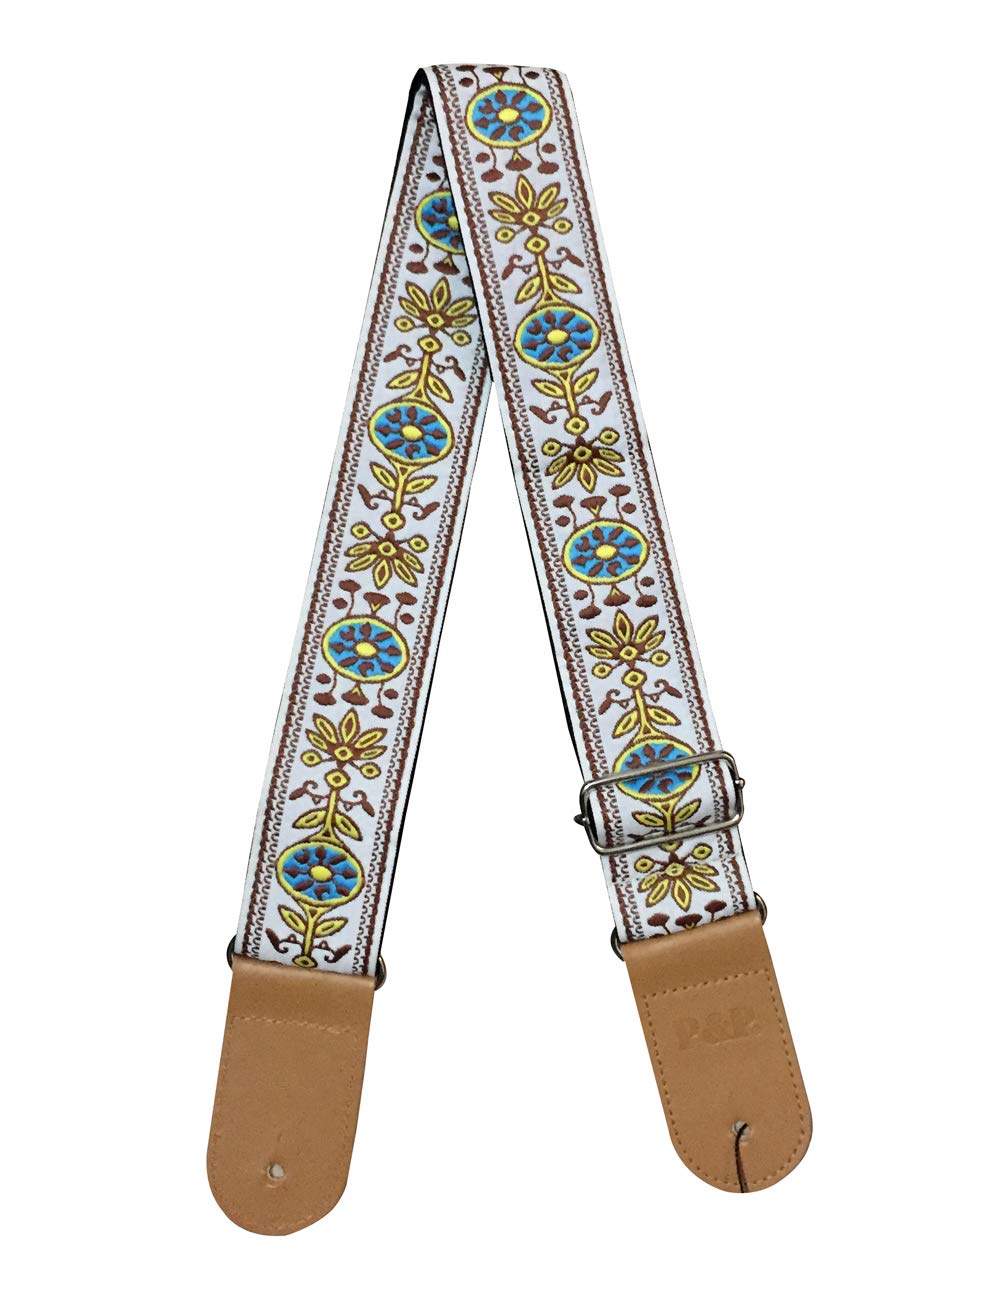 CLOUDMUSIC Guitar Strap Acoustic Electric Bass Jacquard Weave Vintage Classic Designs Gifted With Guitar Picks Strap Locks